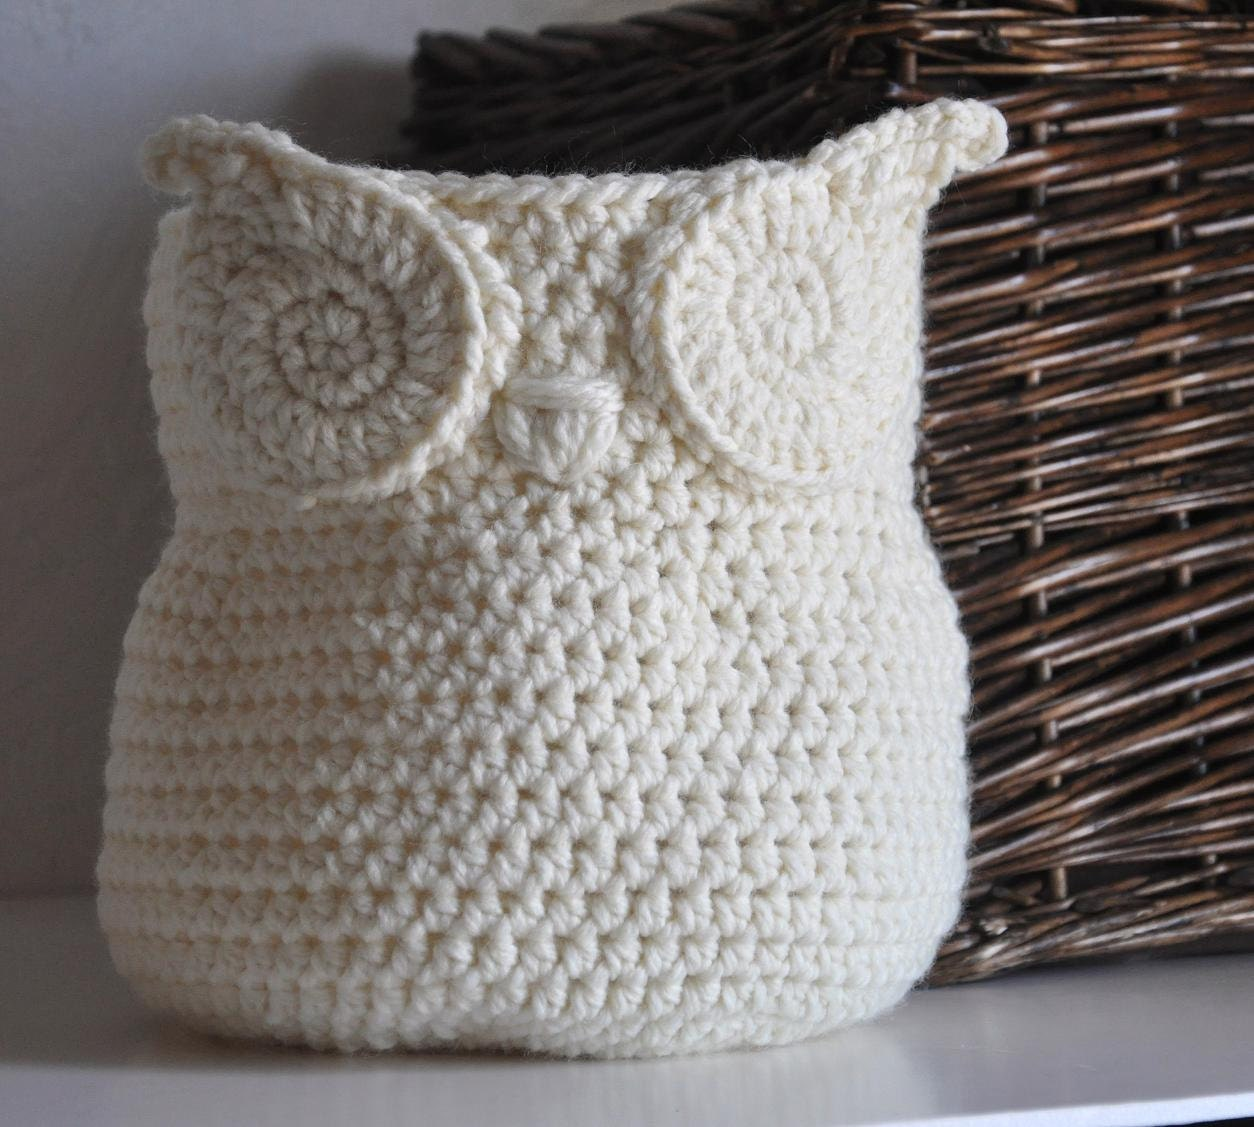 Crochet Owl Basket : Owl Basket Crocheted Bin Yarn Holder Nursery Decor Home Organizer ...